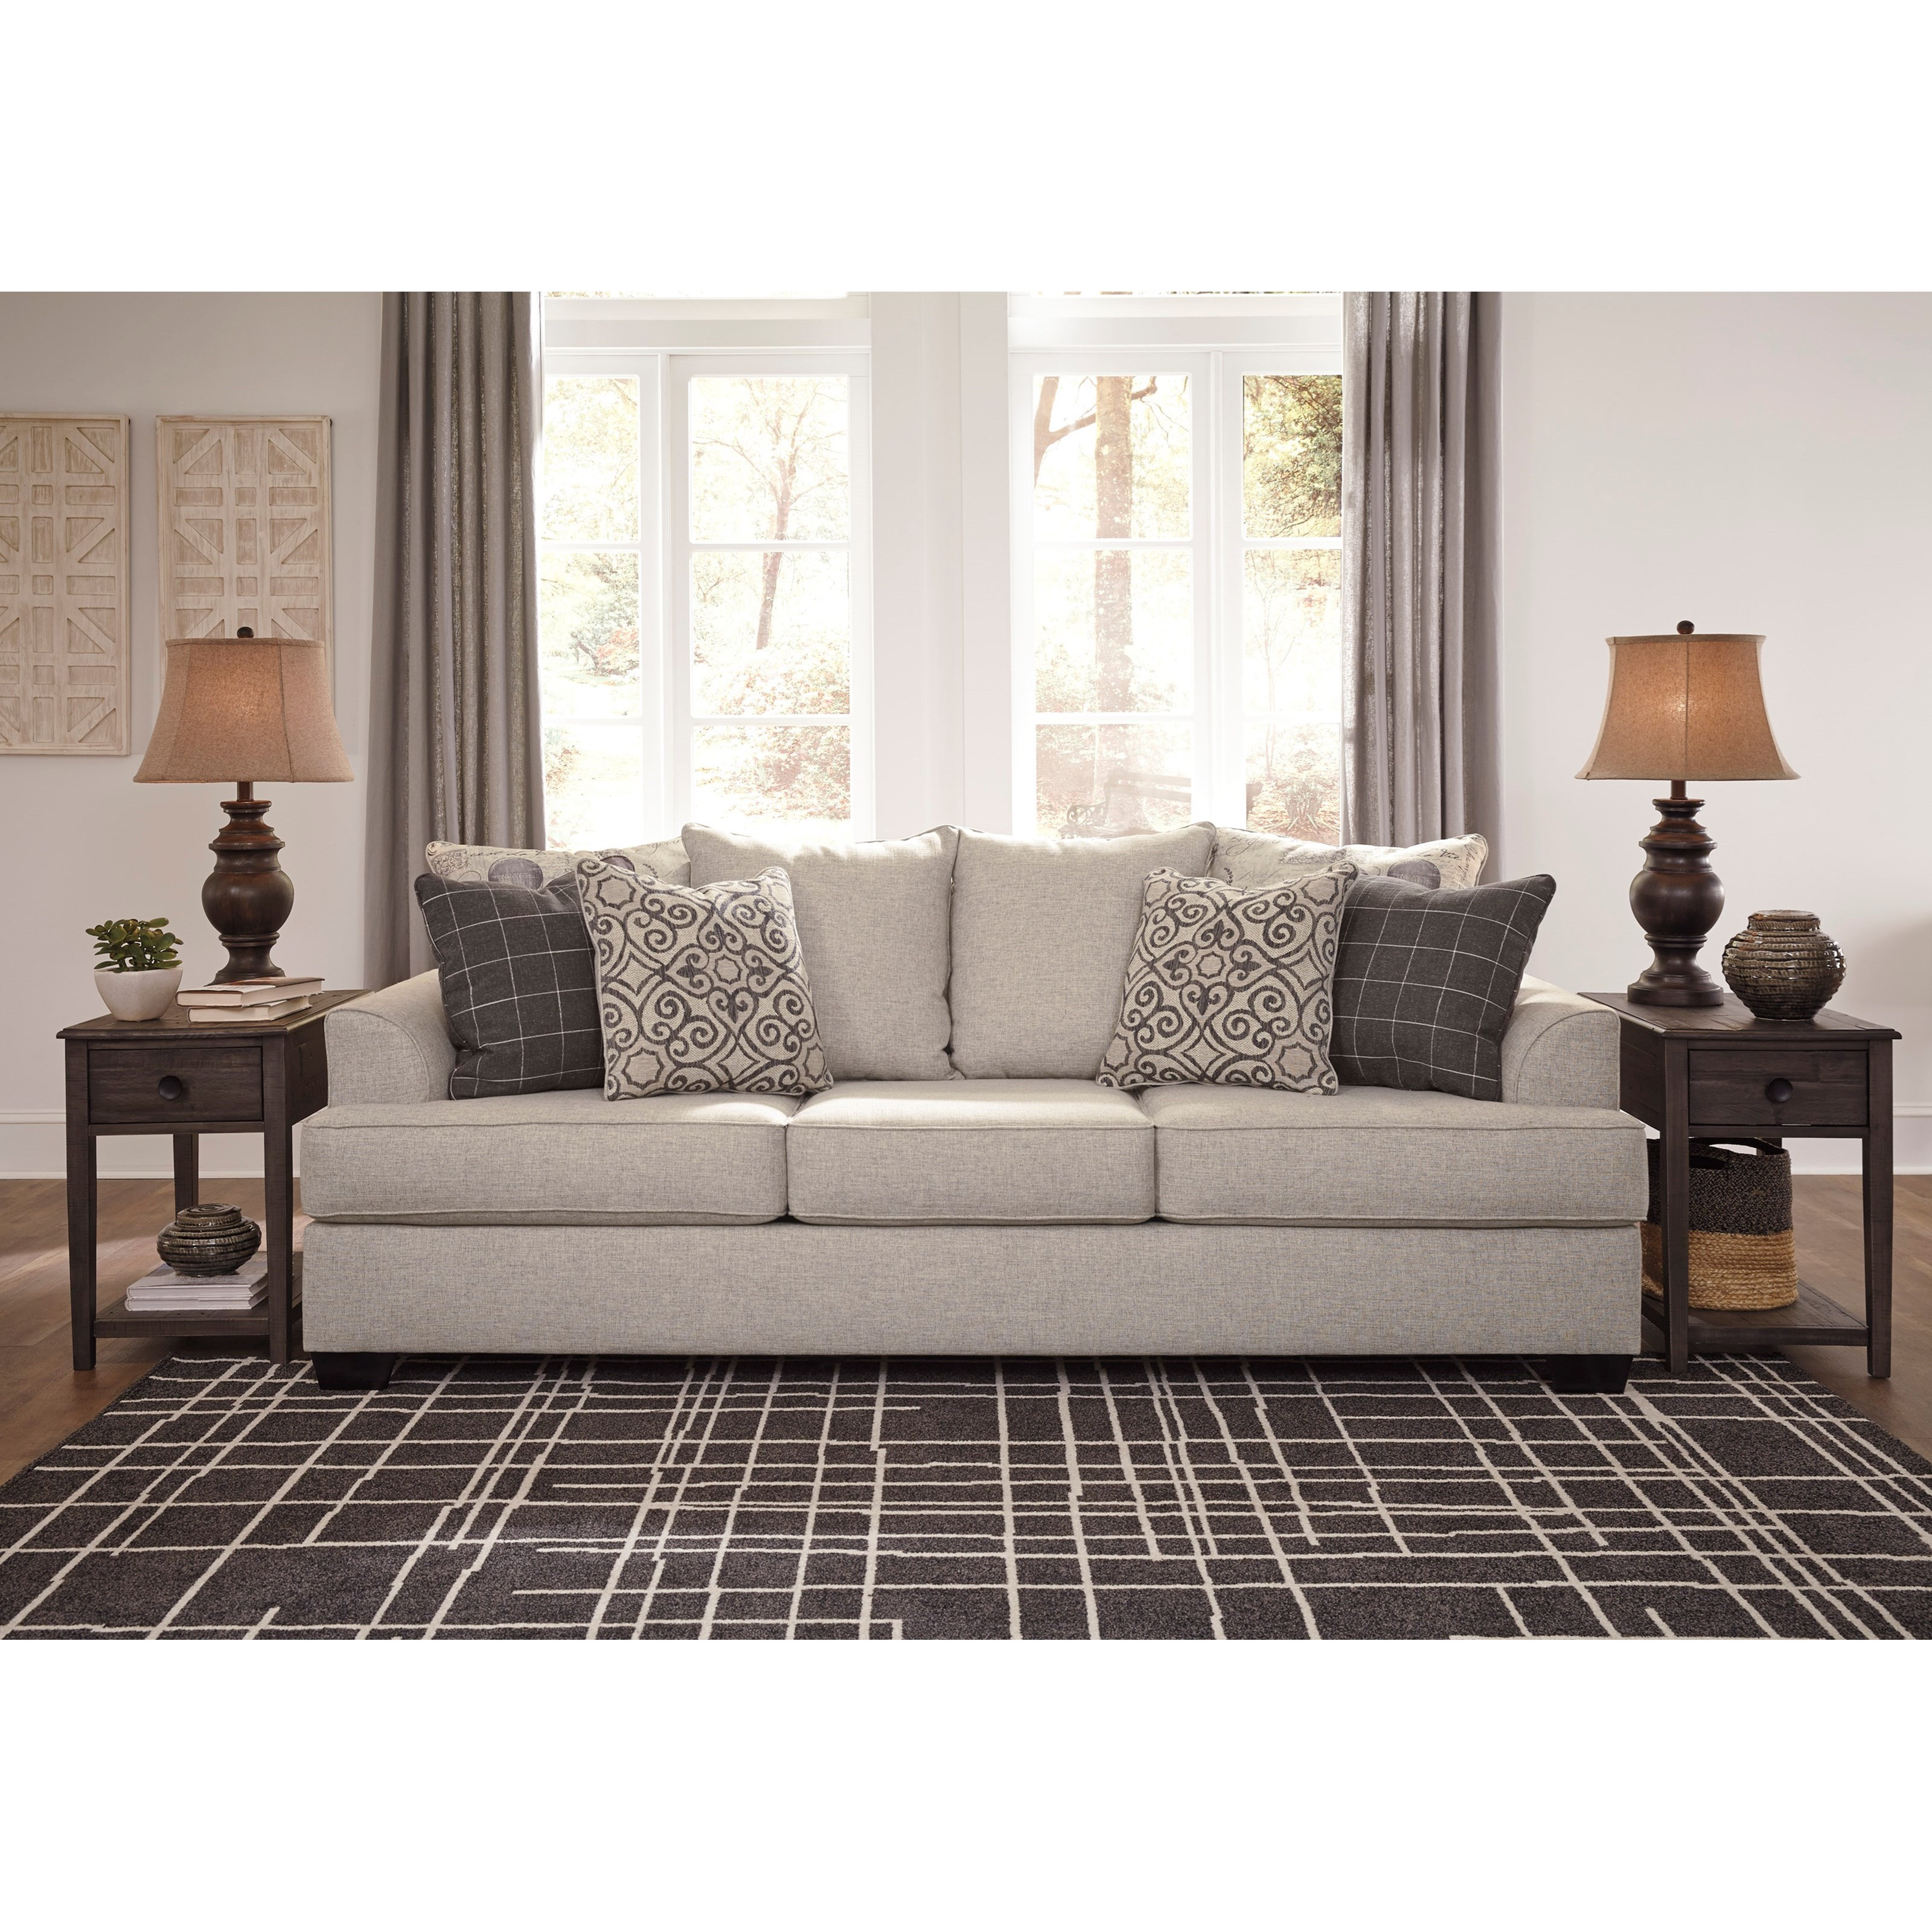 Signature Design By Ashley Velletri Relaxed Vintage Sofa